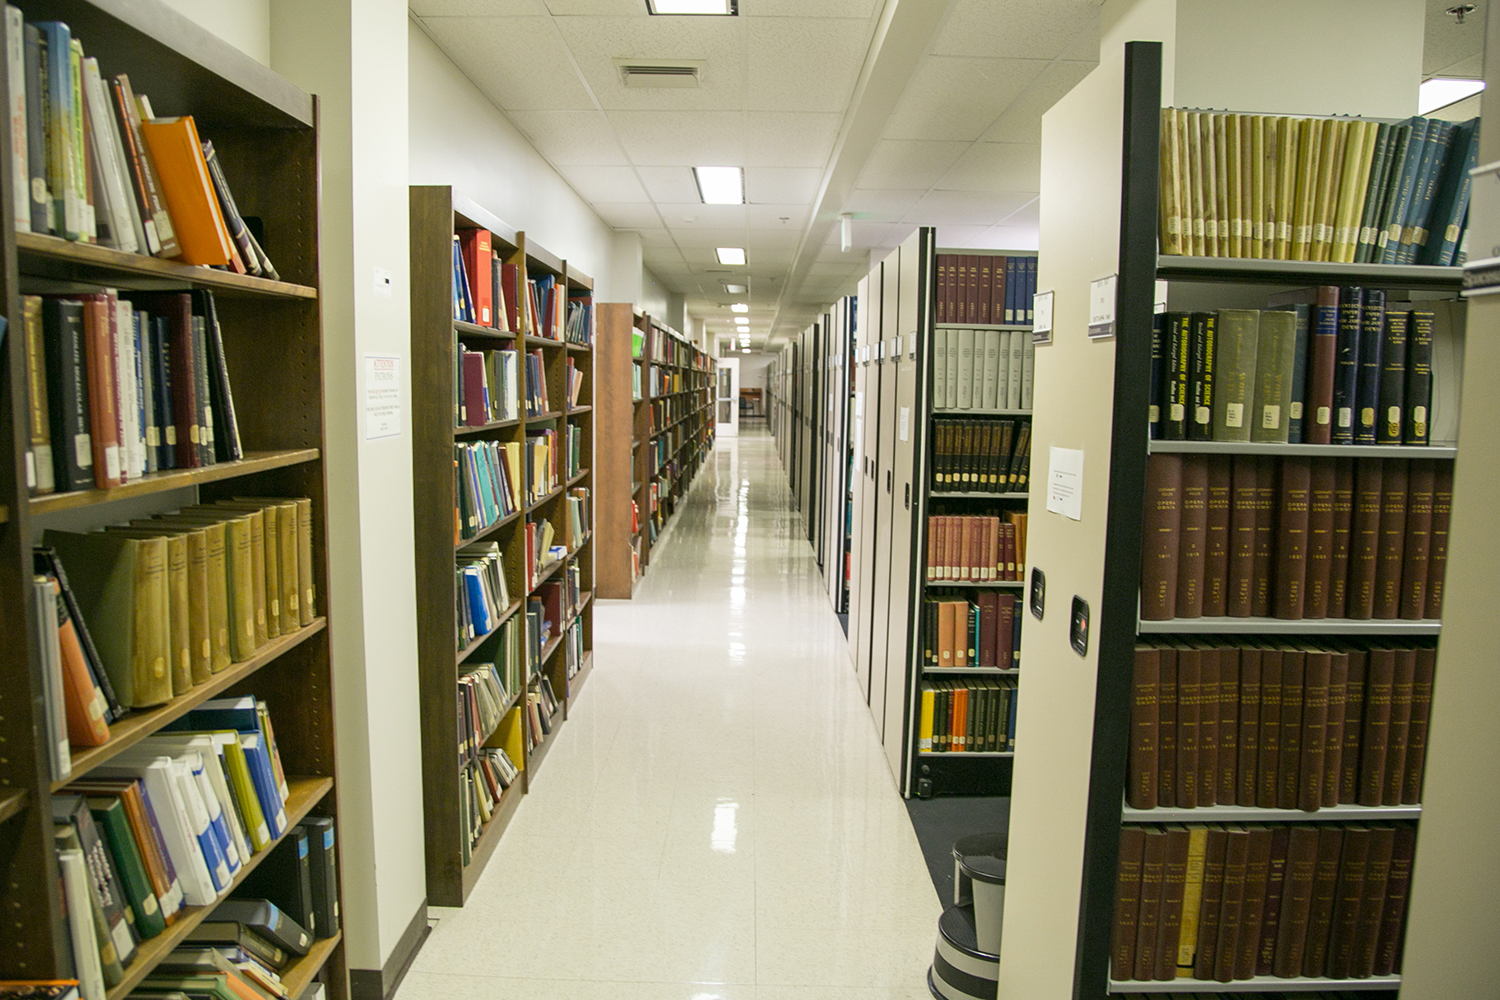 The Redstone Scientific Information Center provides access to a catalog of aerospace engineering-related books, journals, and technical articles for government civilians and contractors who work at or for organizations at Redstone Arsenal and Marshall Space Flight Center. The library ceased operations and converted to an online library model effective Sept. 30.